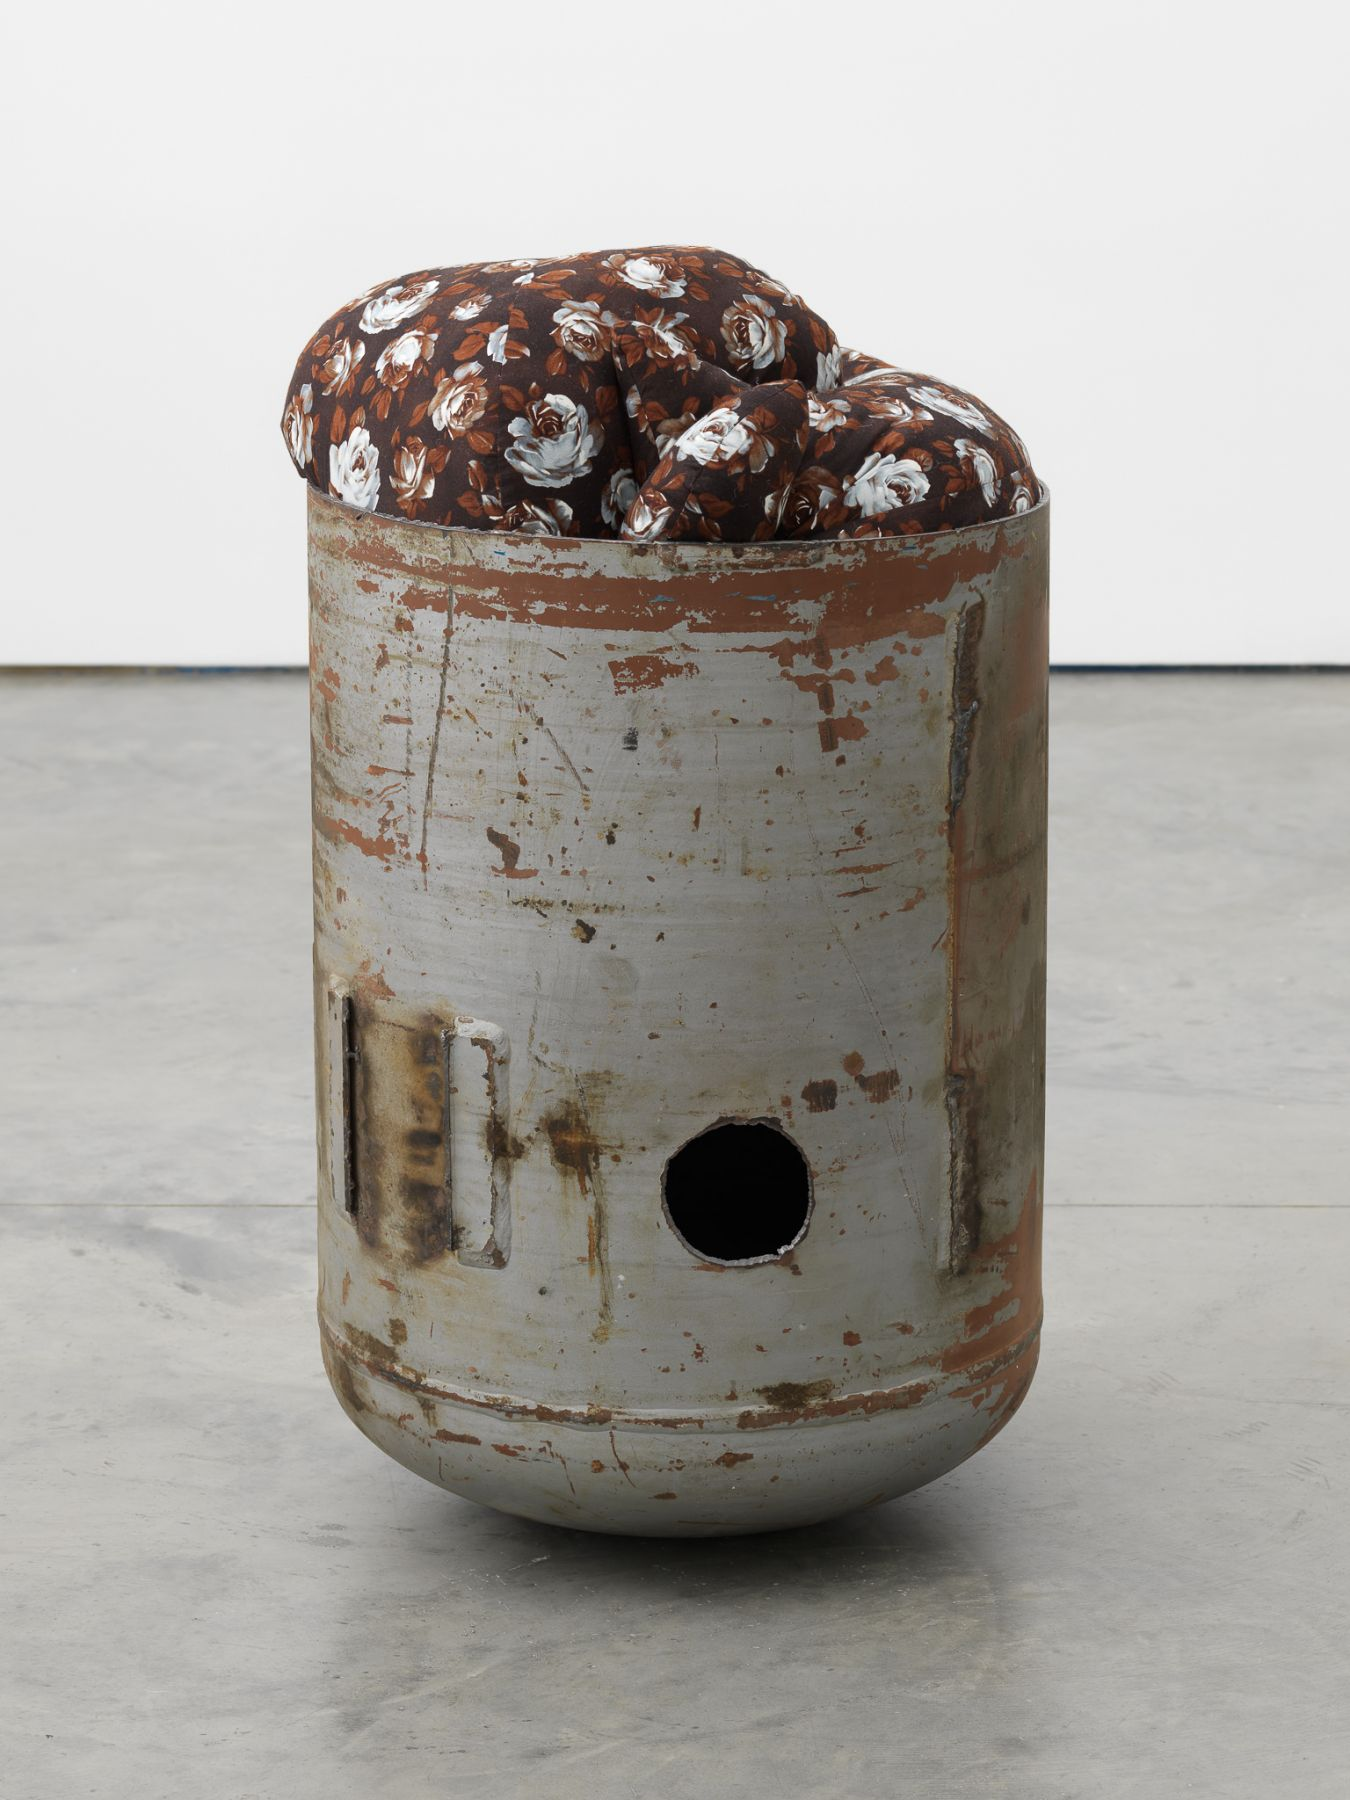 Elad Lassry, Untitled (Pod, Brown Floral, 3), 2018